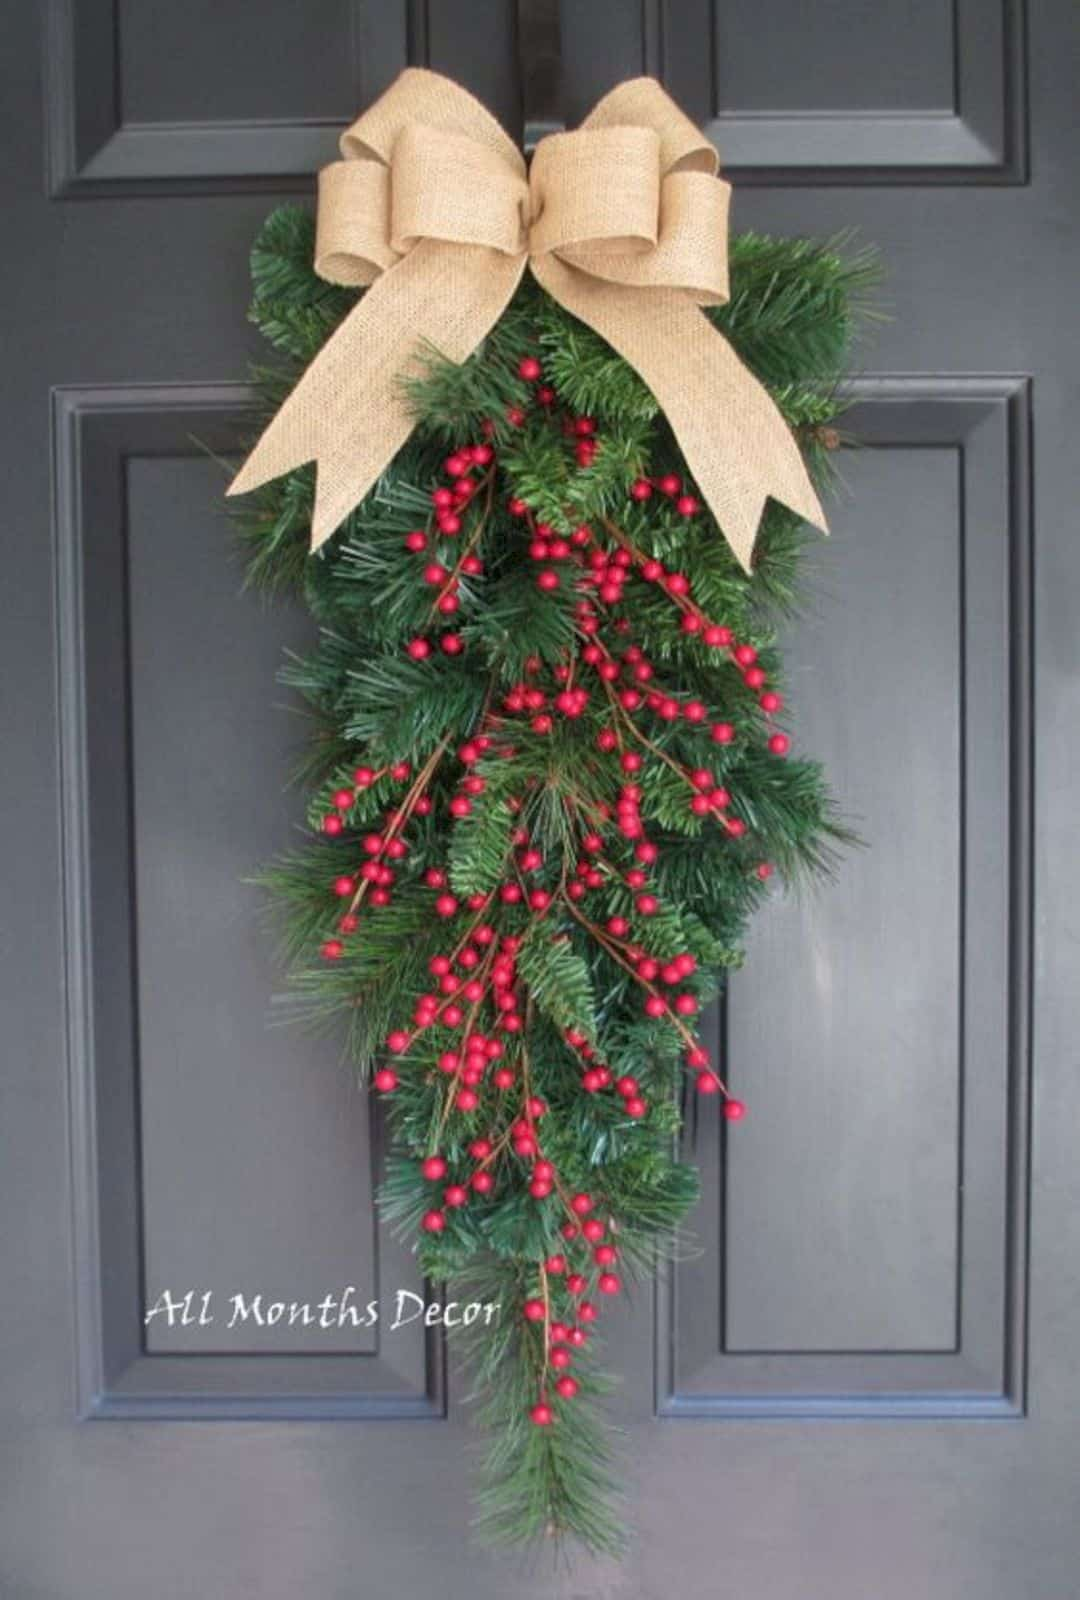 20 festive christmas wreaths that will bring joy to your home for 4 h decoration ideas